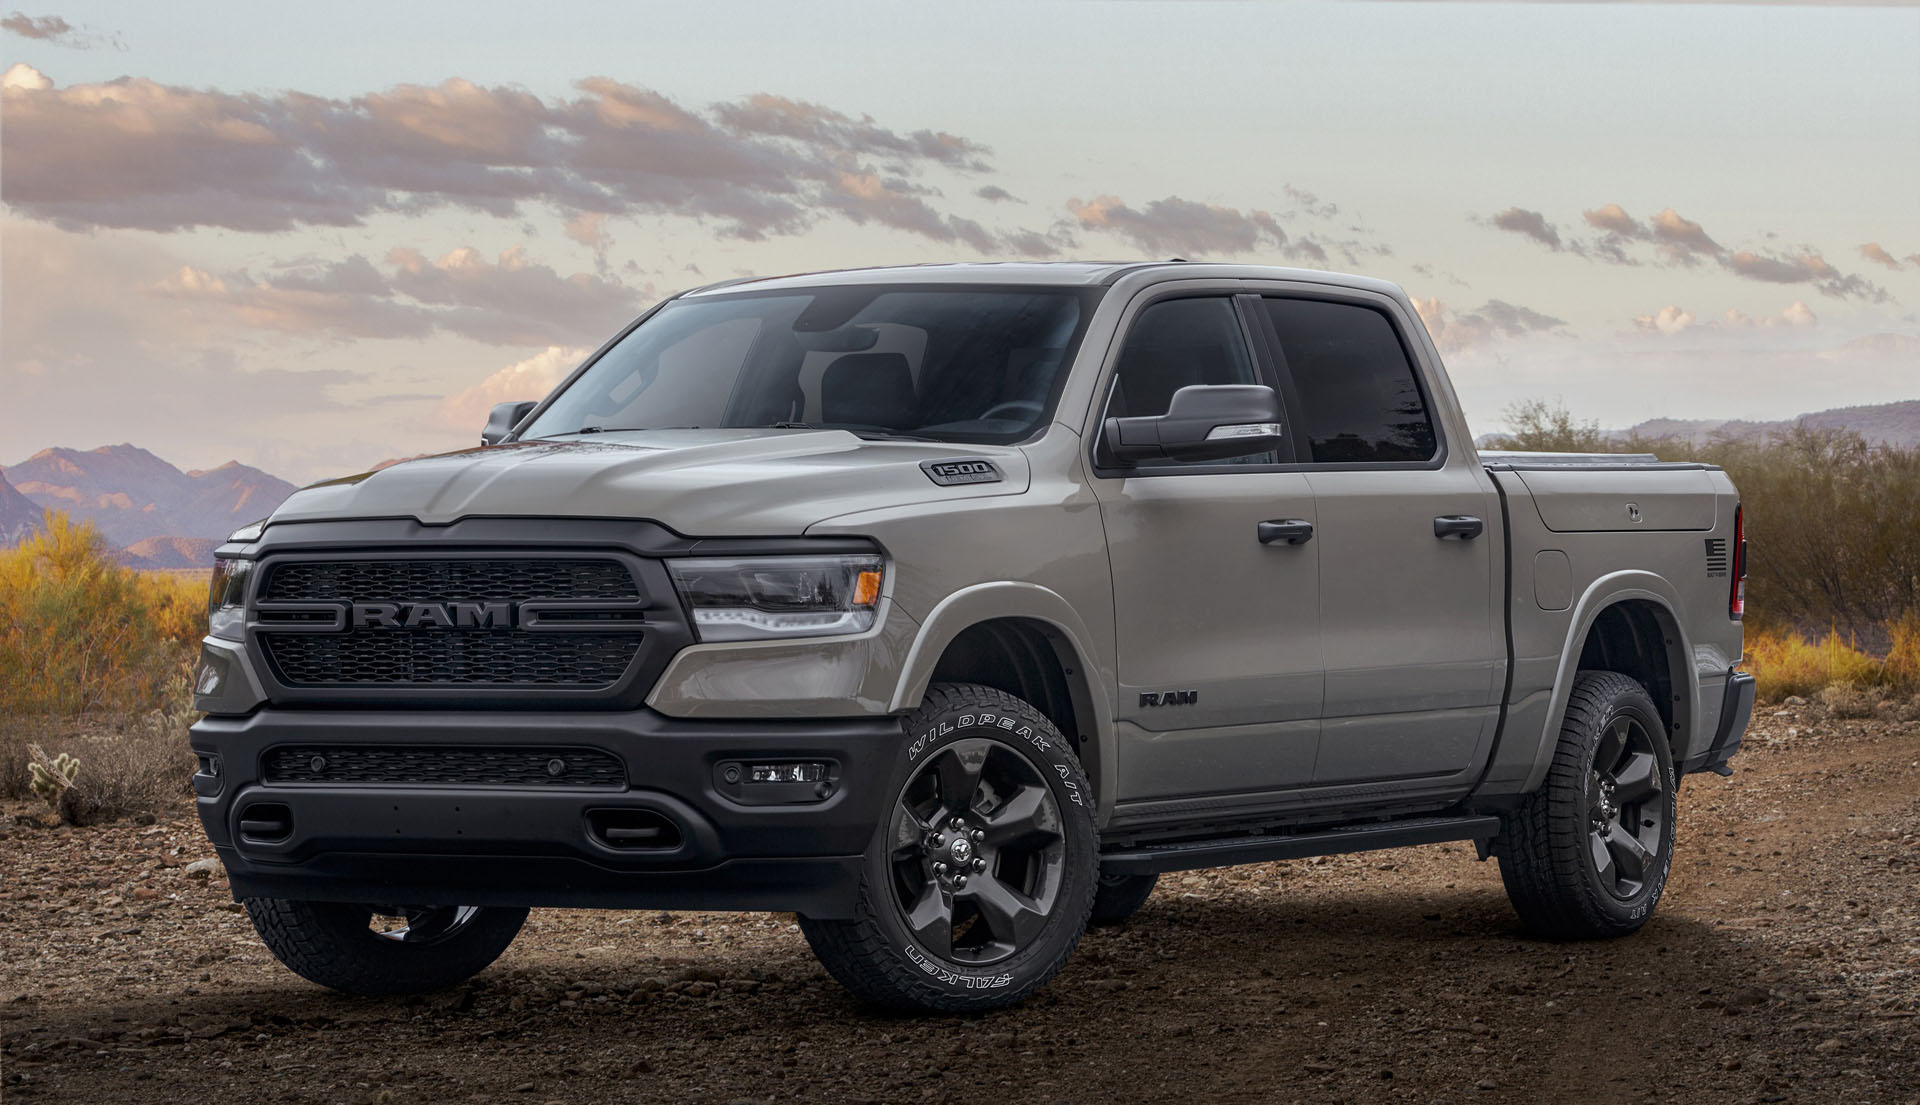 F 150 Vs Ram 1500 Jeep Wrangler Ecodiesel Review Volvo Boosts Phev Range What S New The Car Connection